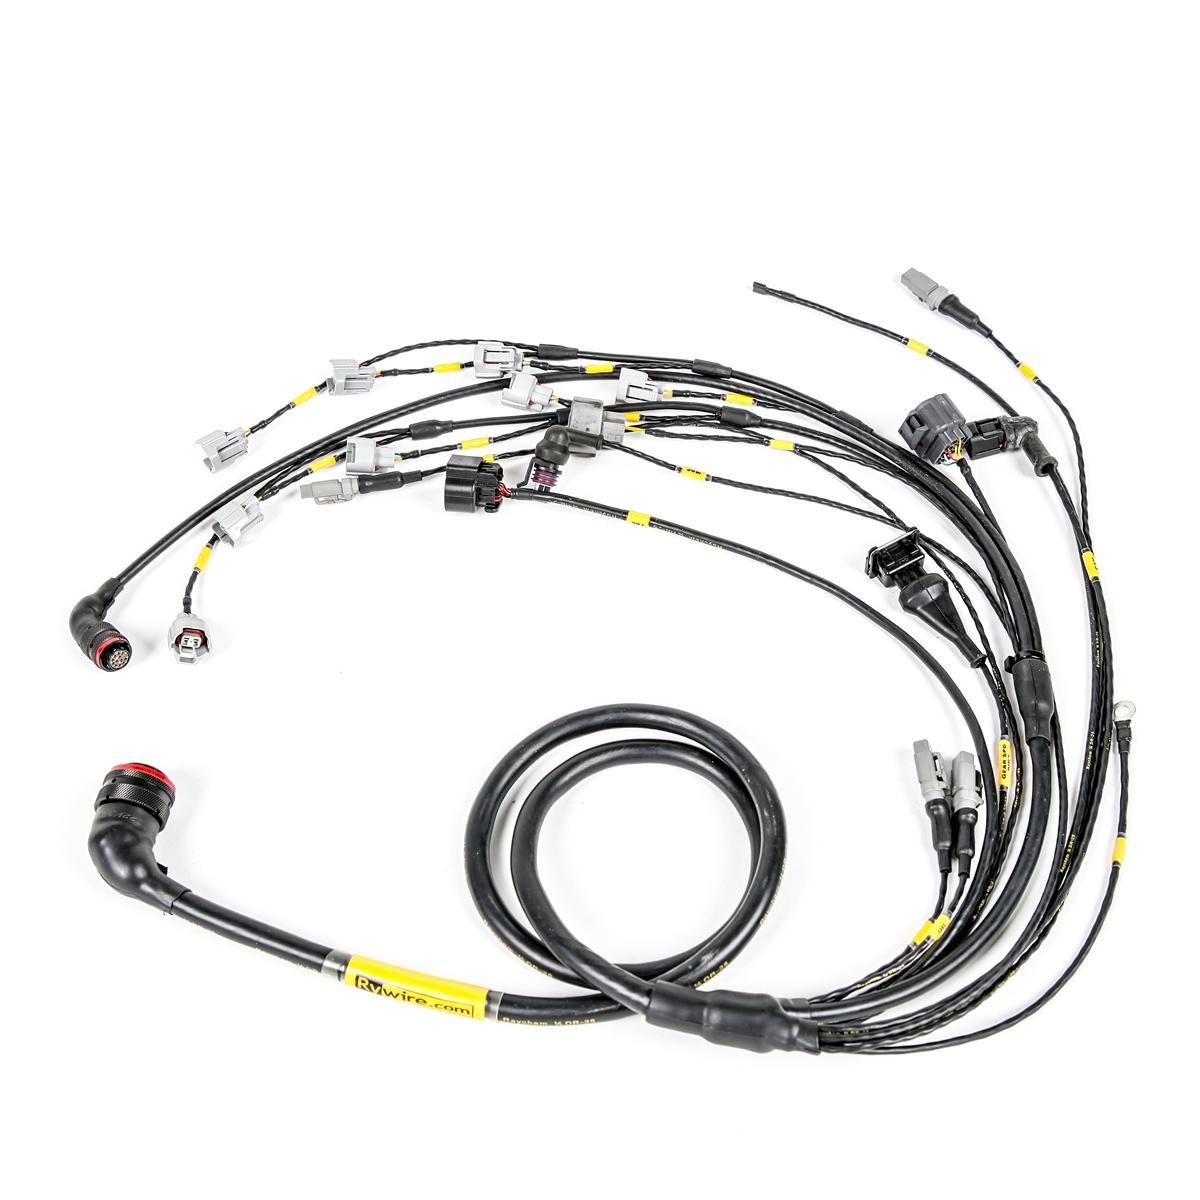 rywirecom mil spec custom engine harness